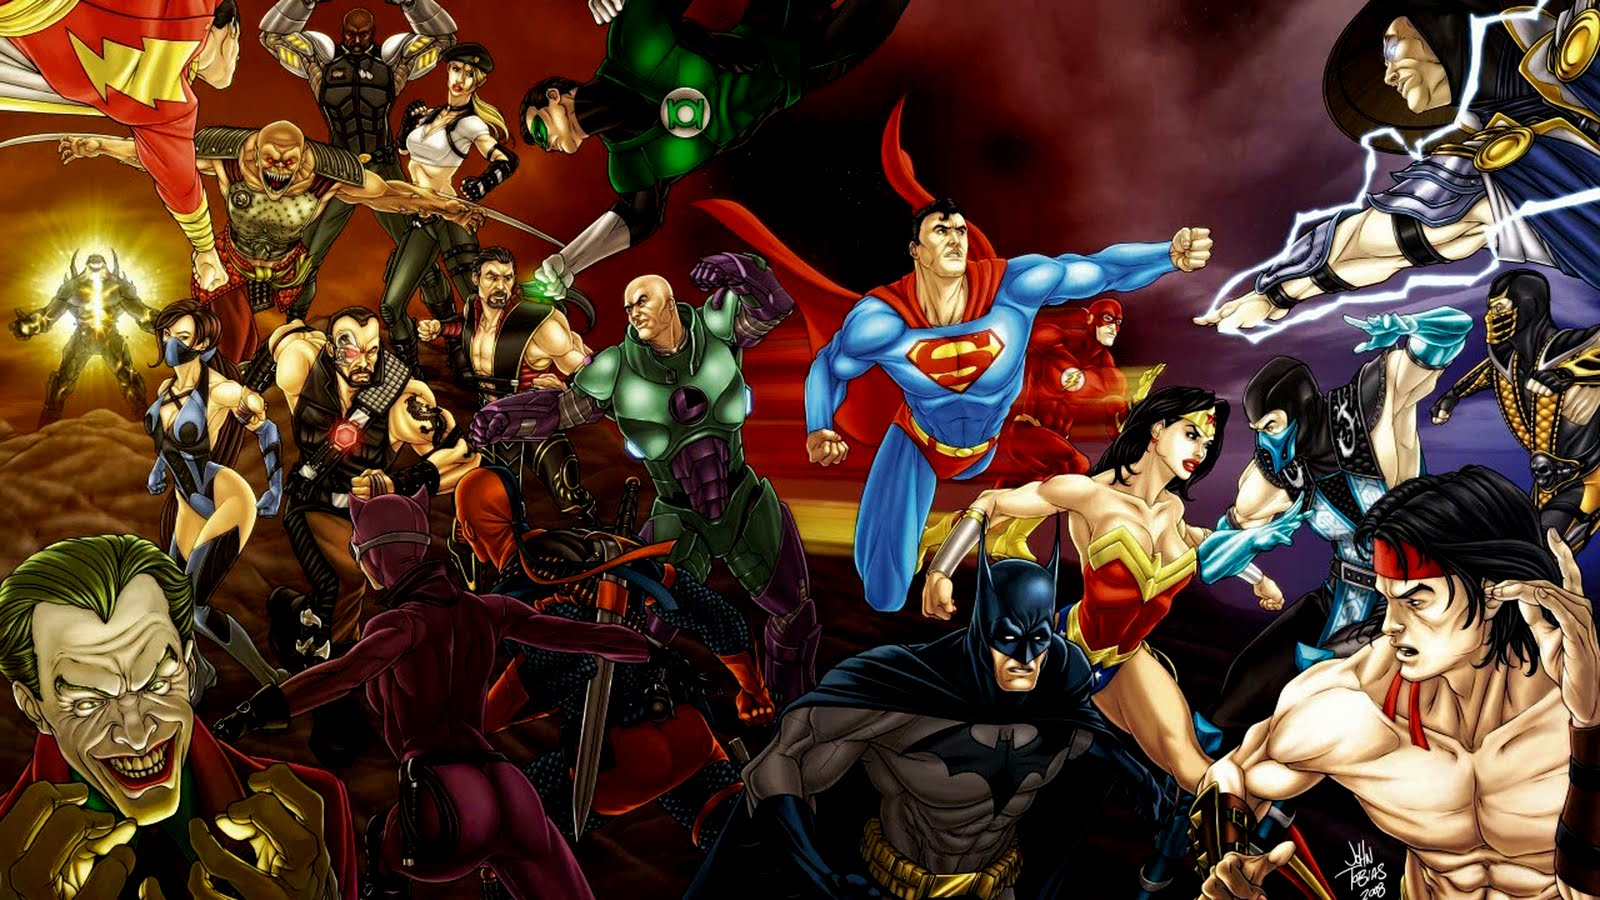 DC Comics All Super Heroes HD Wallpapers Download Wallpapers in 1600x900